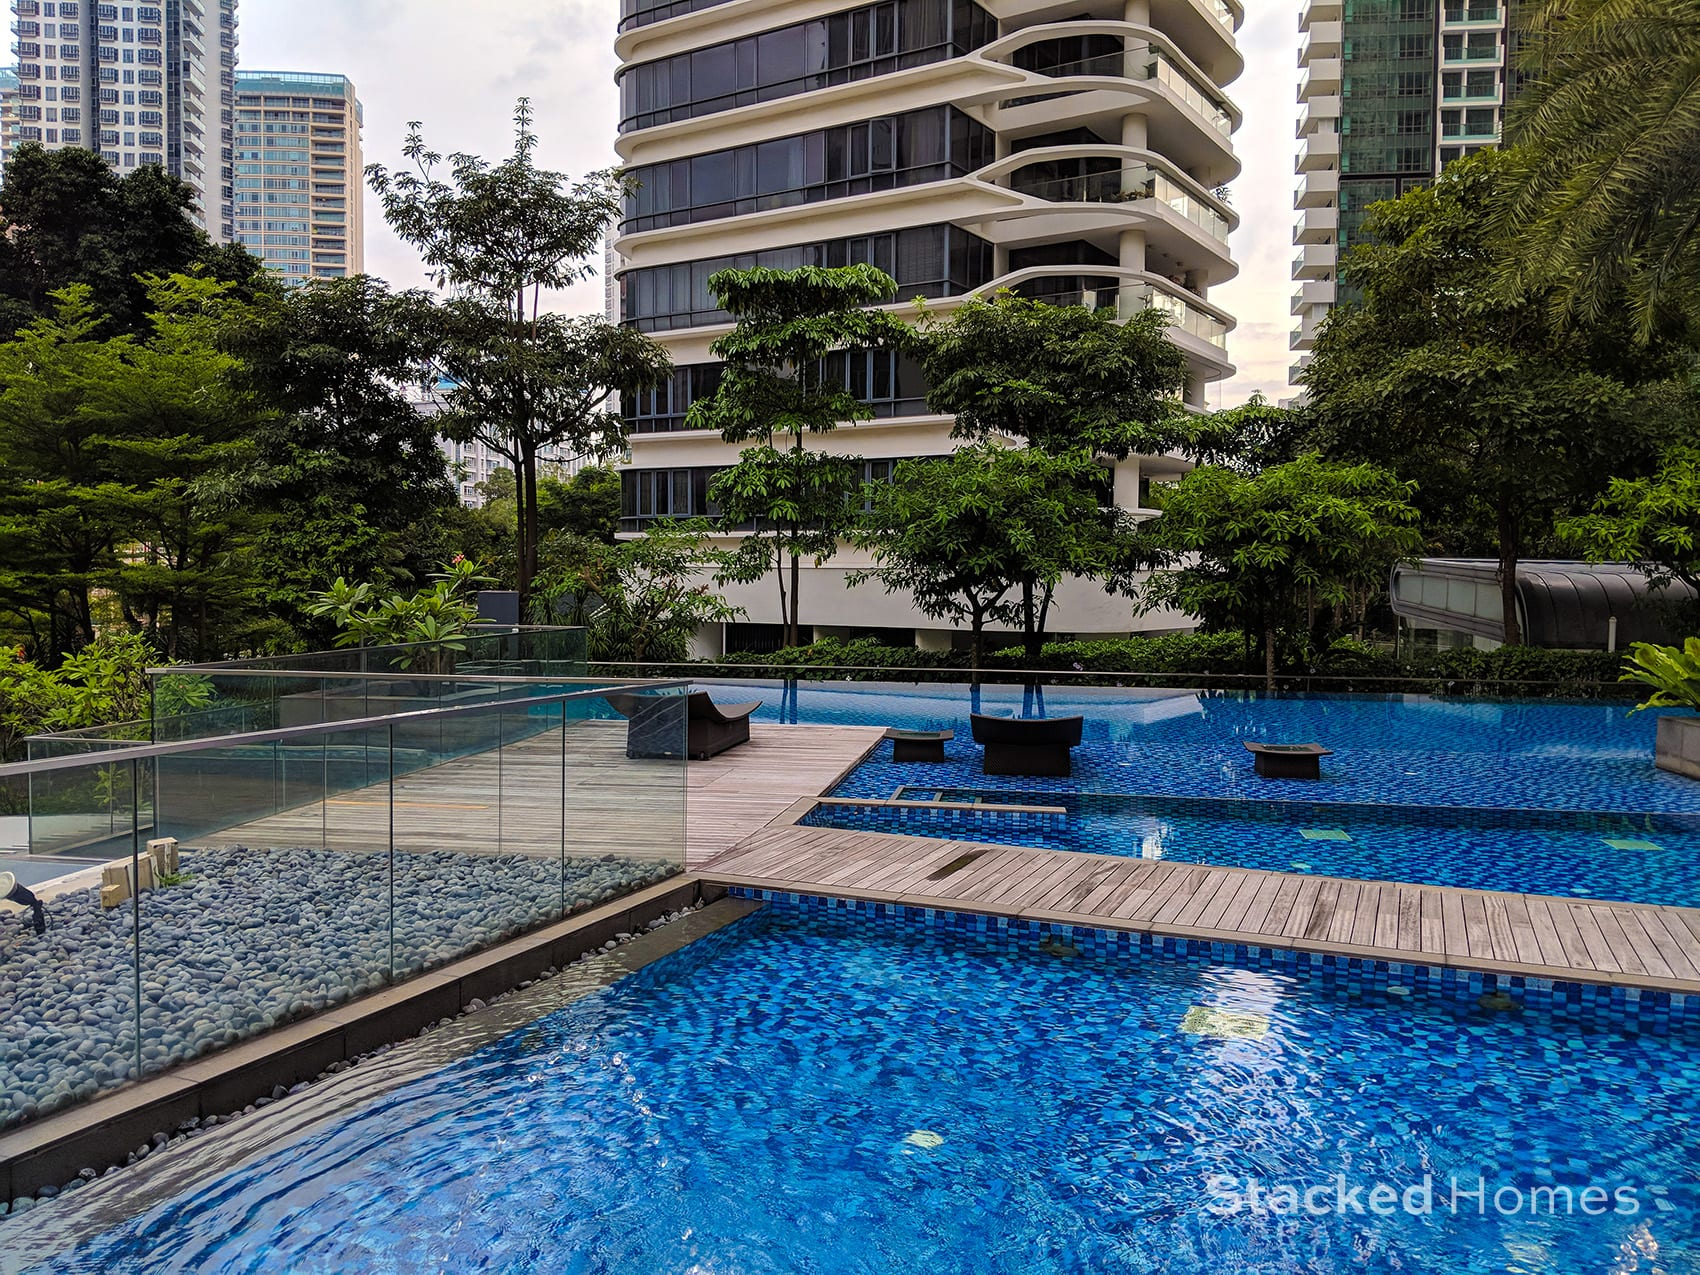 espada condo pool view